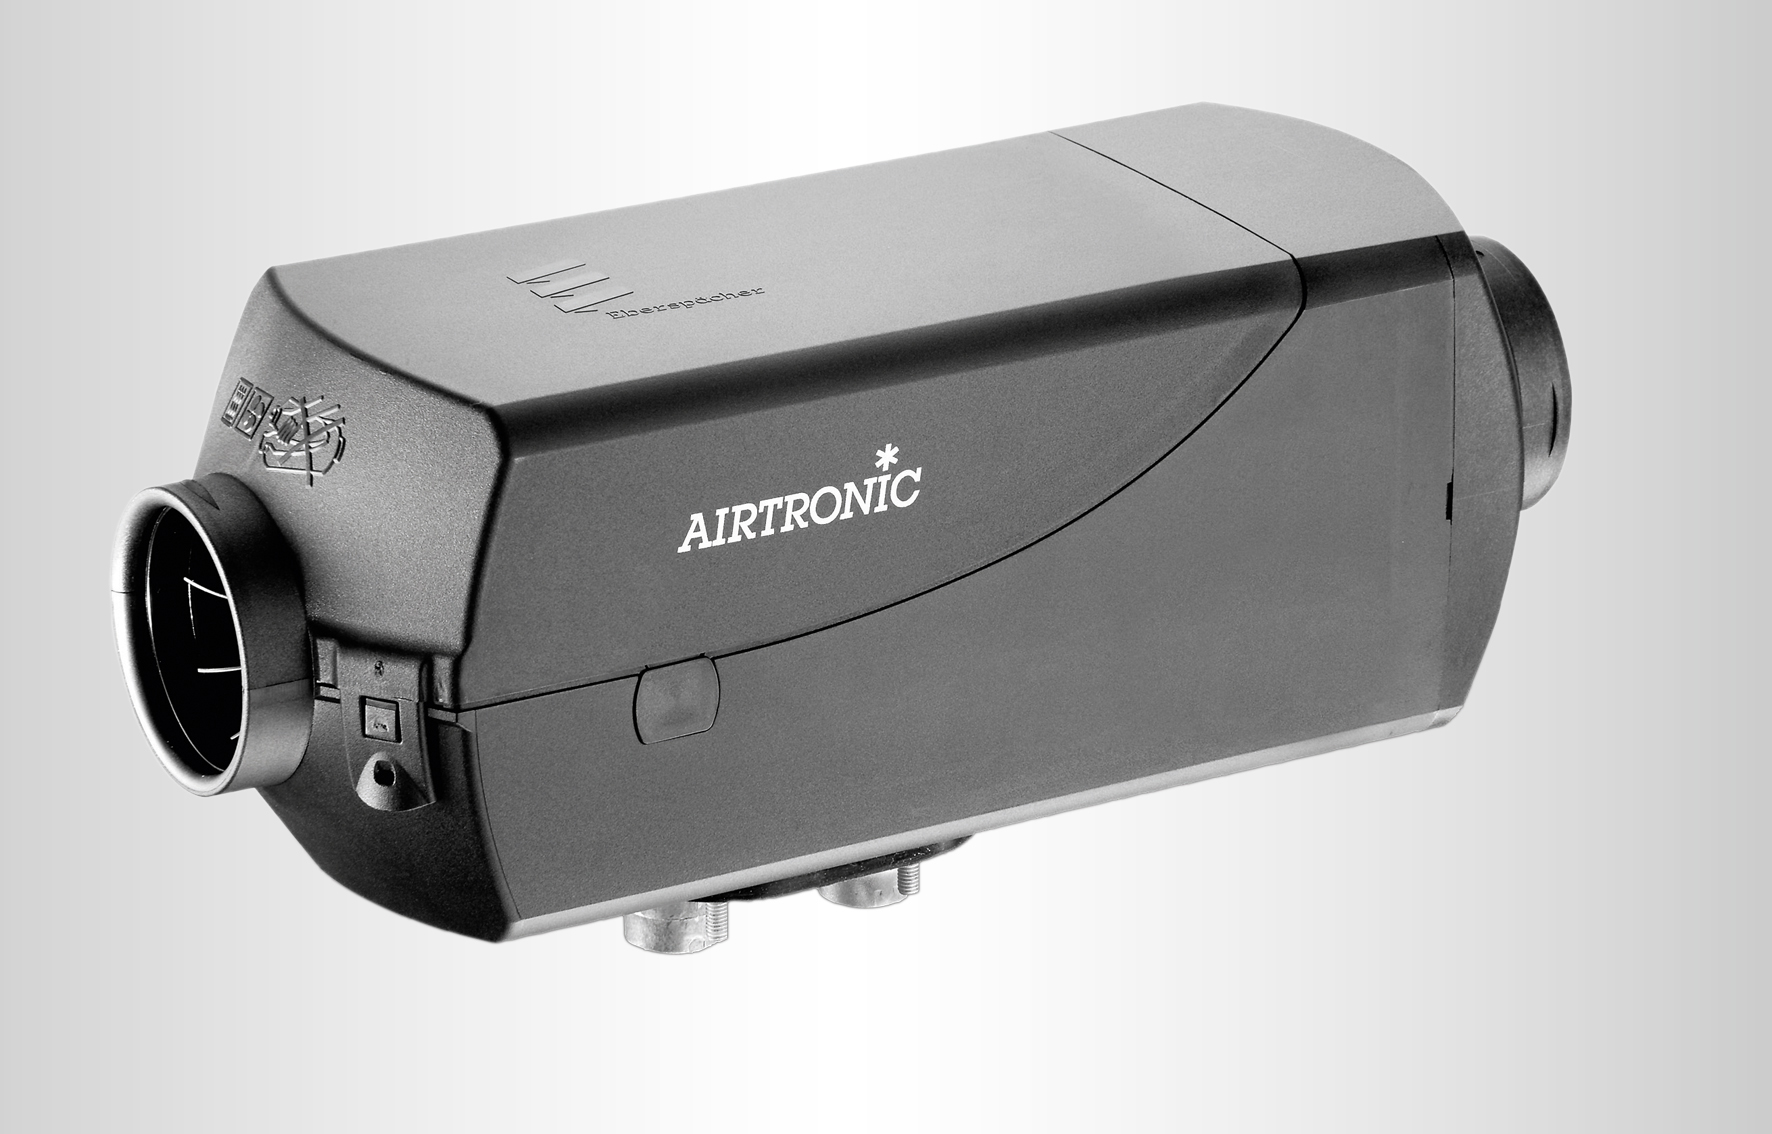 hzt_airtronic_300-1